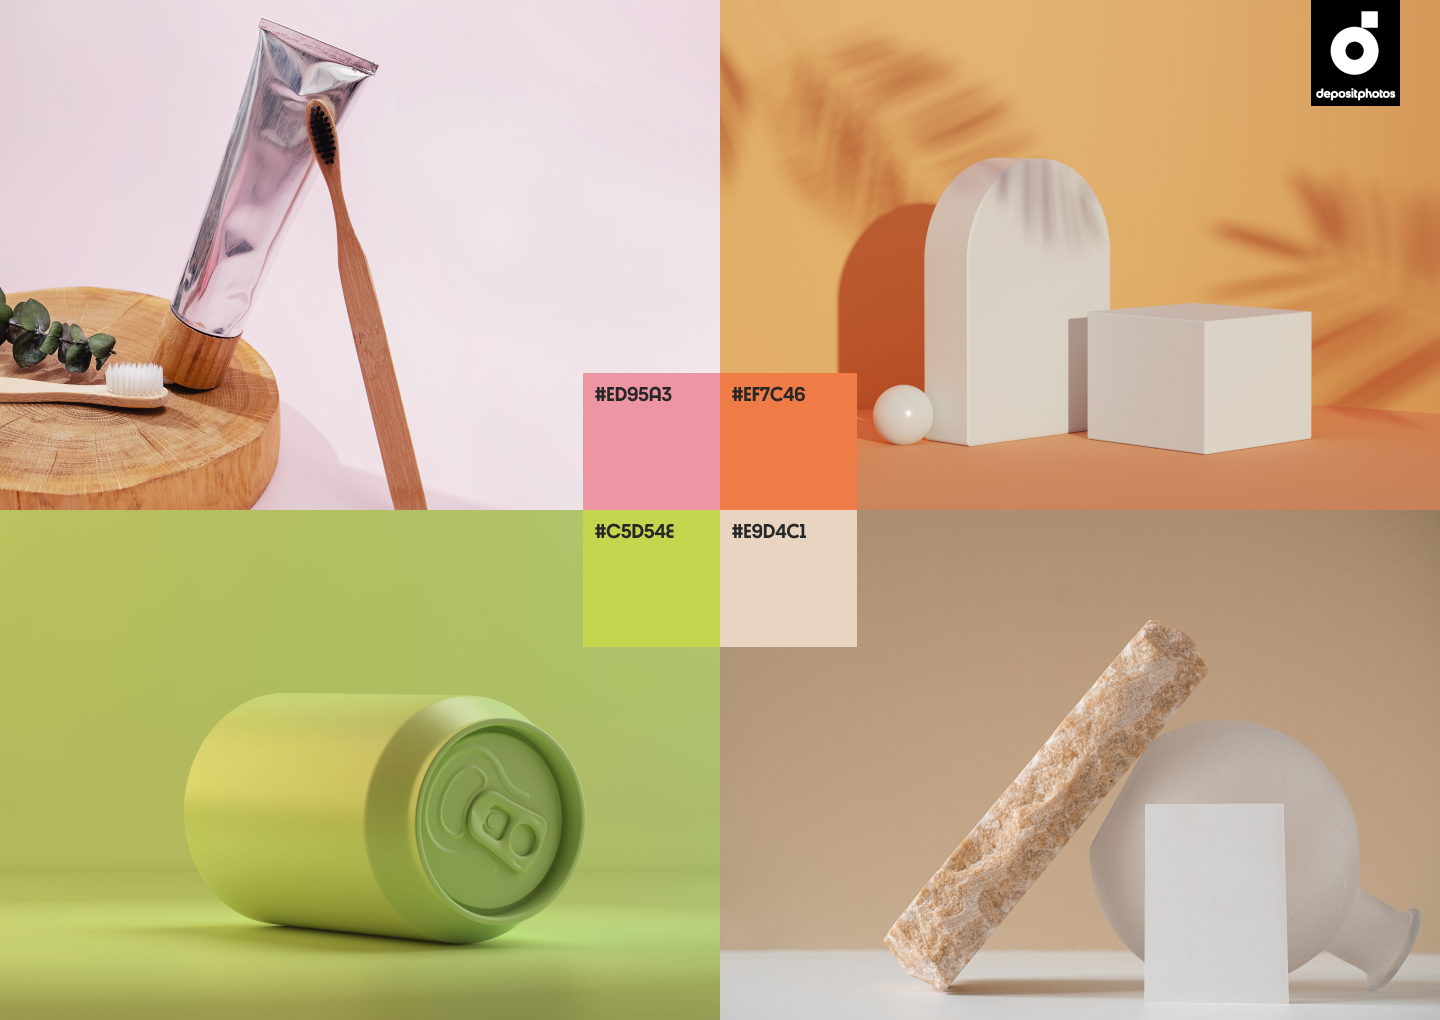 Design mockups for summer-related projects03